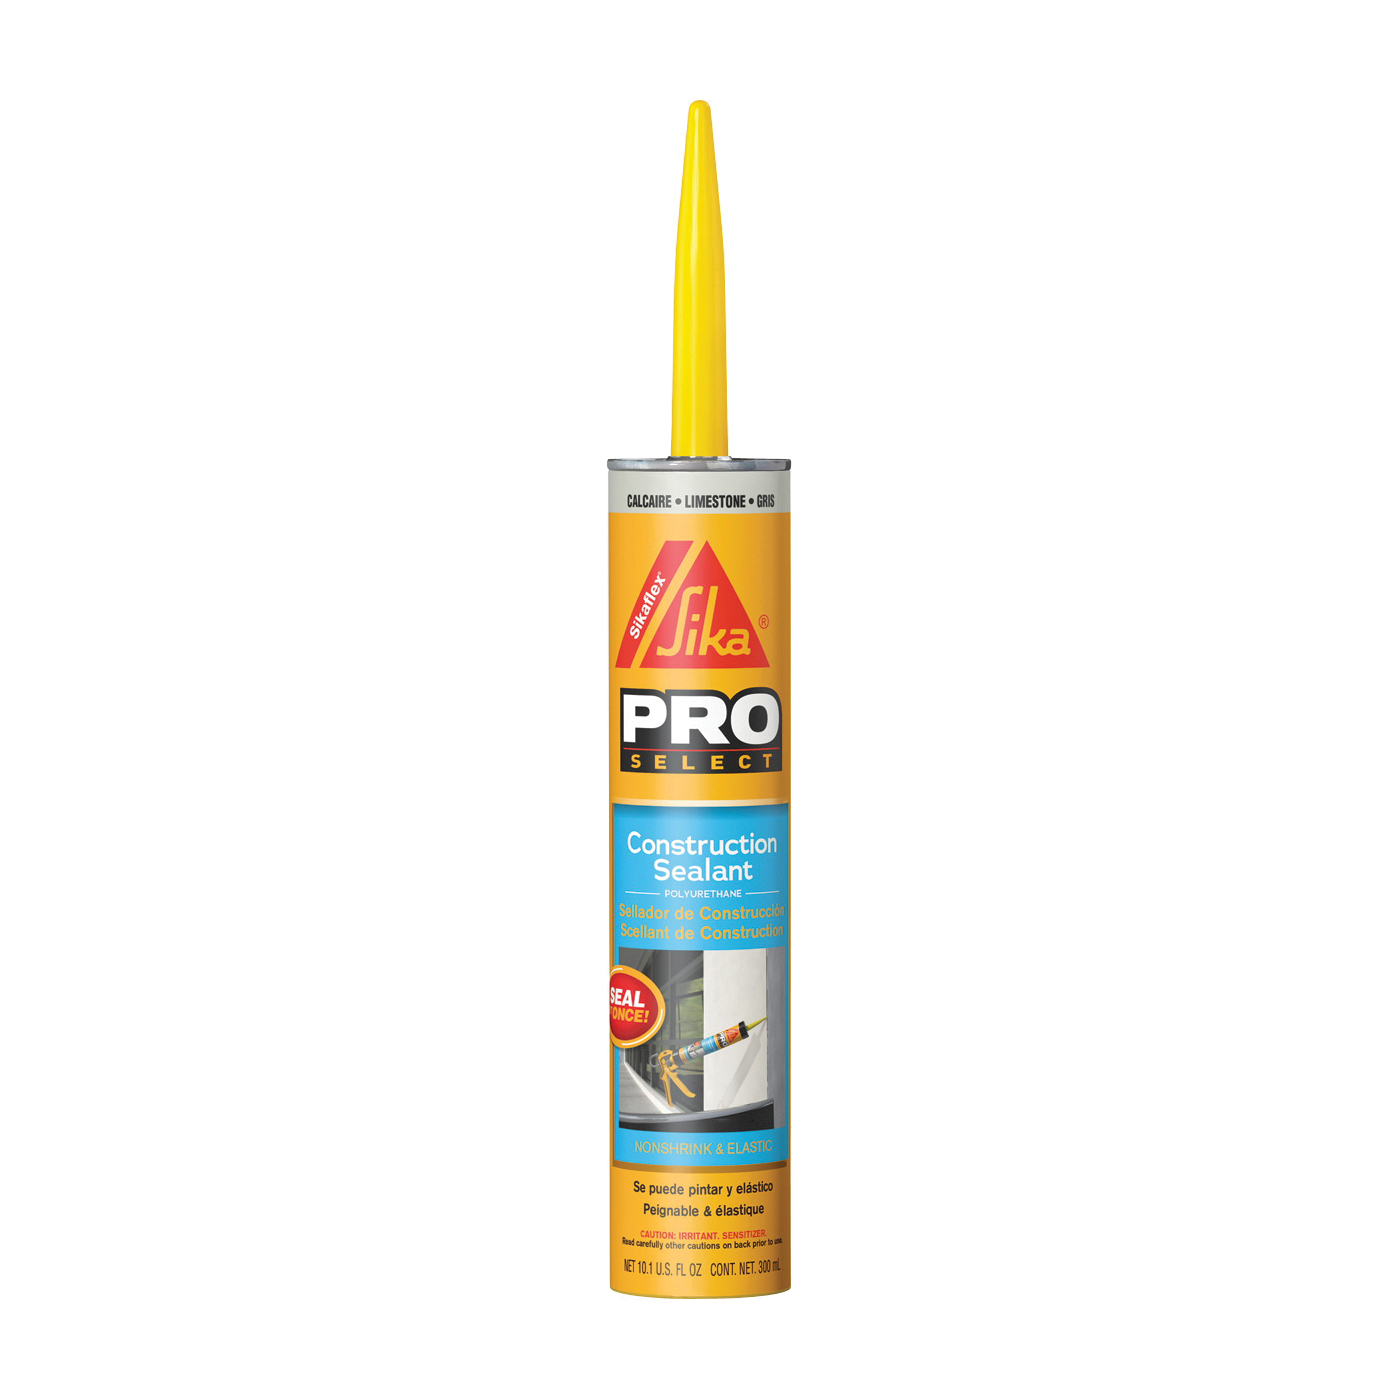 Picture of Sikaflex 90959 Construction Sealant, Limestone, 7 Days Curing, 40 to 100 deg F, 10.1 oz Package, Cartridge